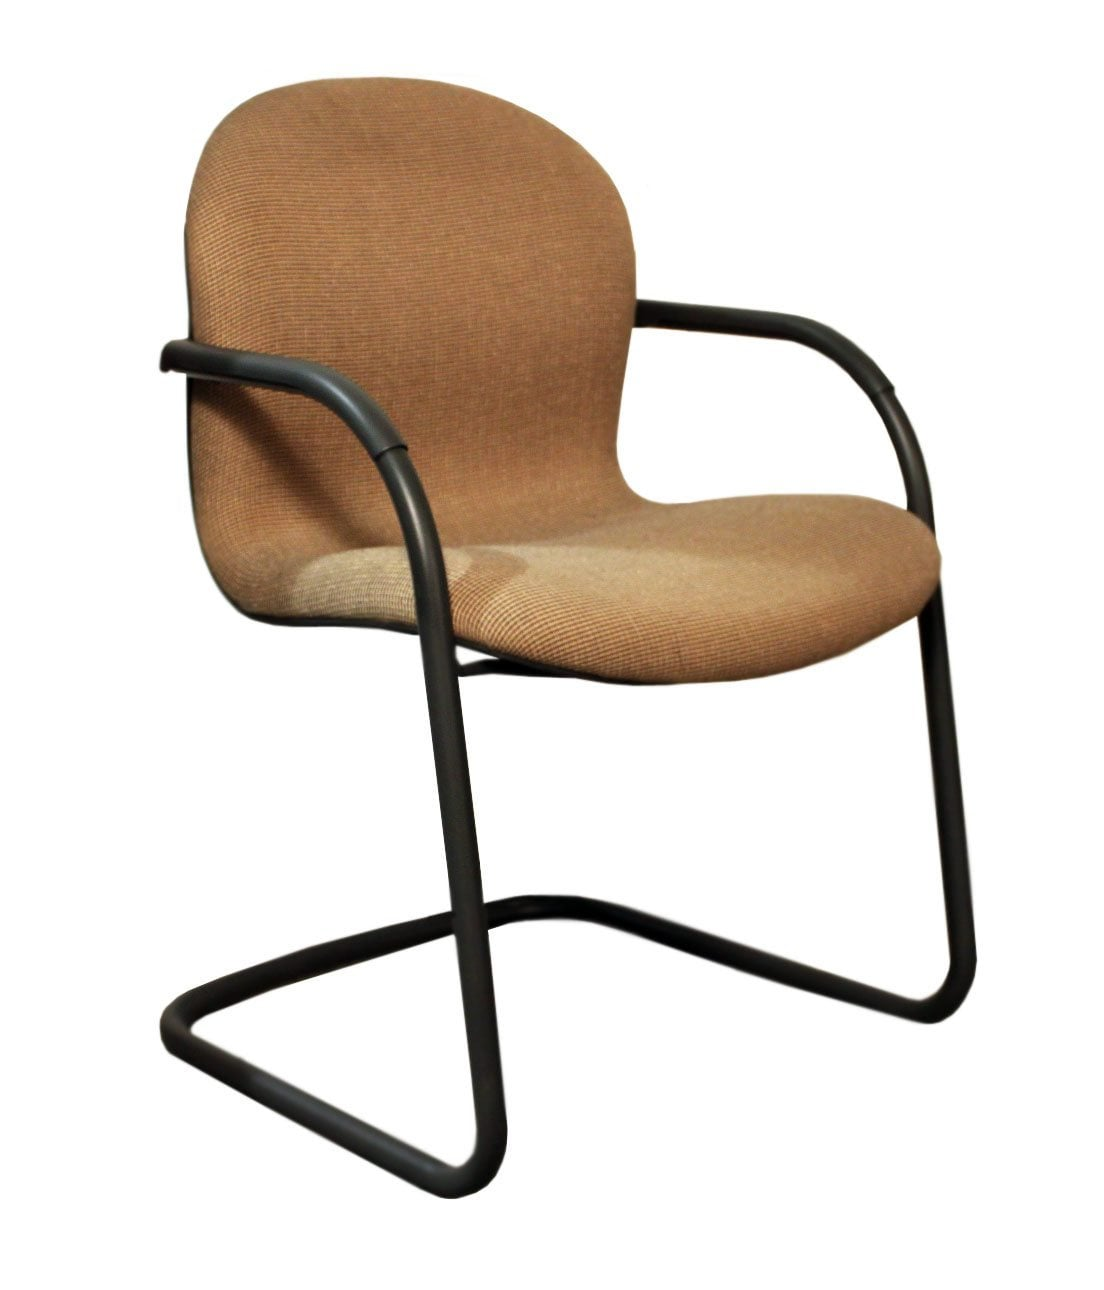 knoll rpm chair best drafting used side tan national office interiors